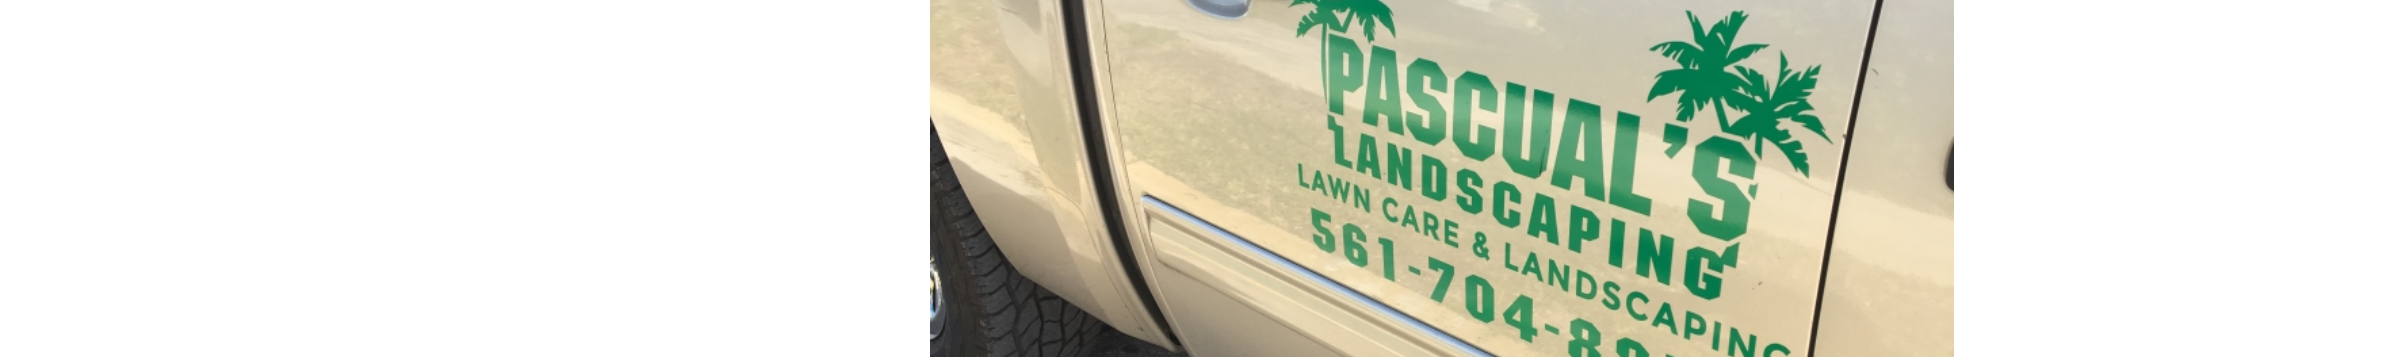 Pascual S Landscaping Lake Worth Fl 33460 Networx